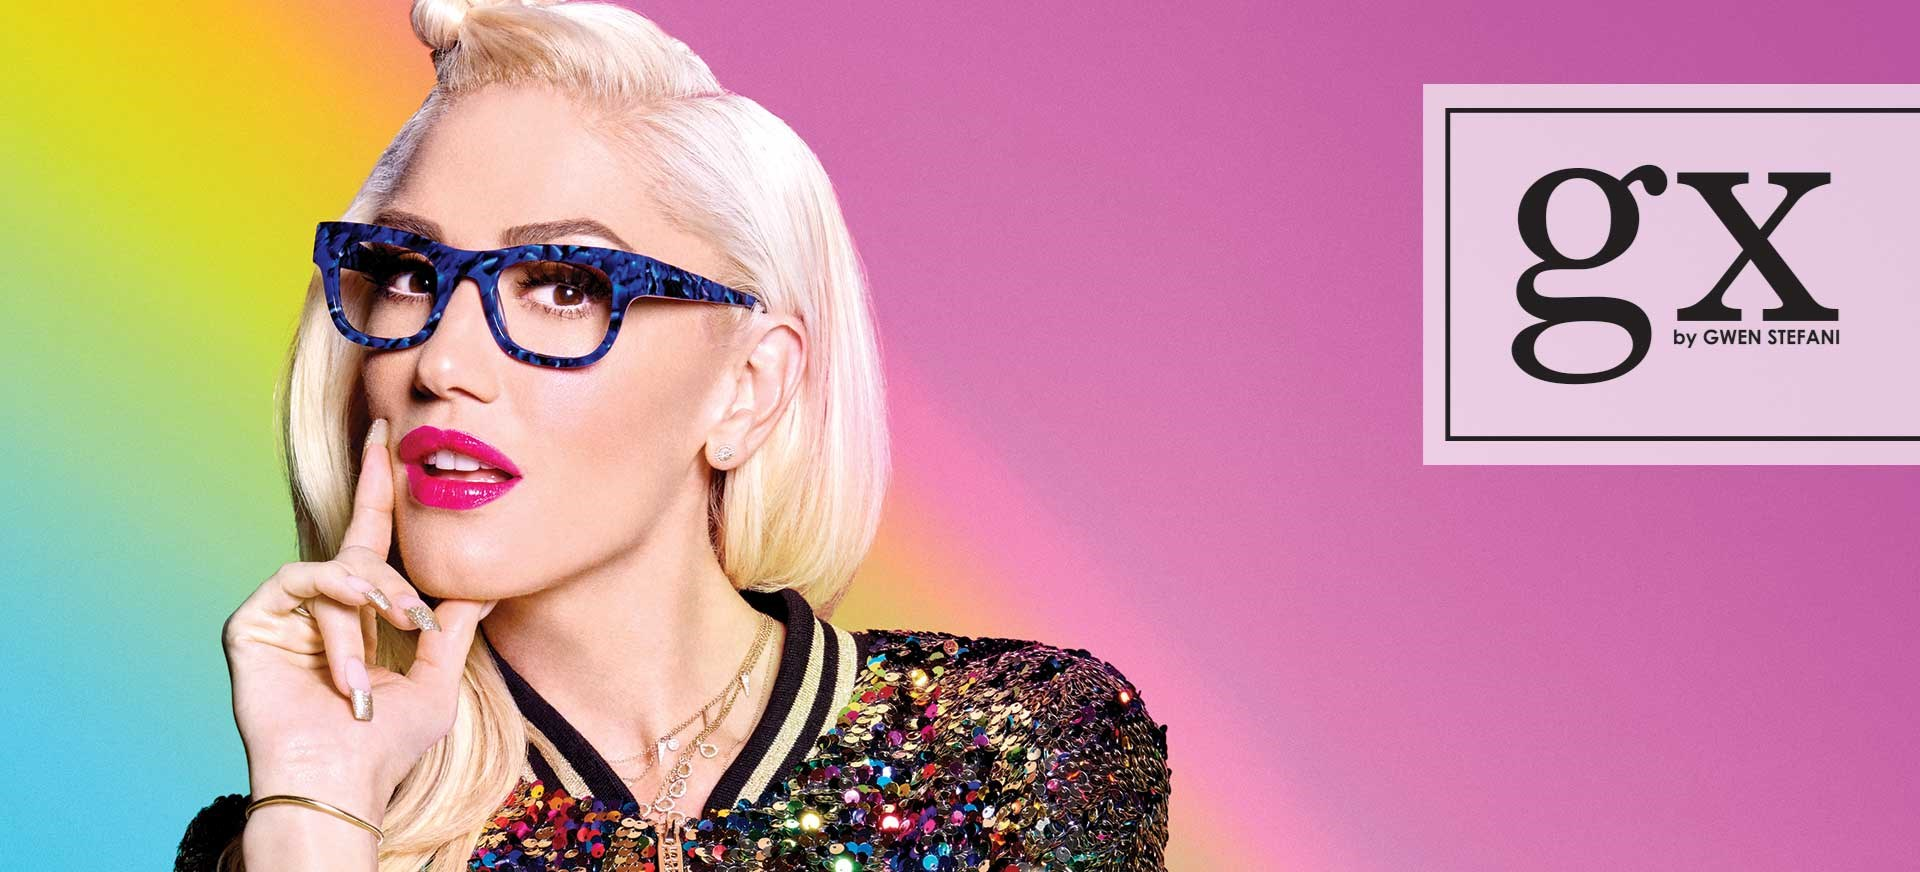 gx by Gwen Stefani Womens Optical Eyewear